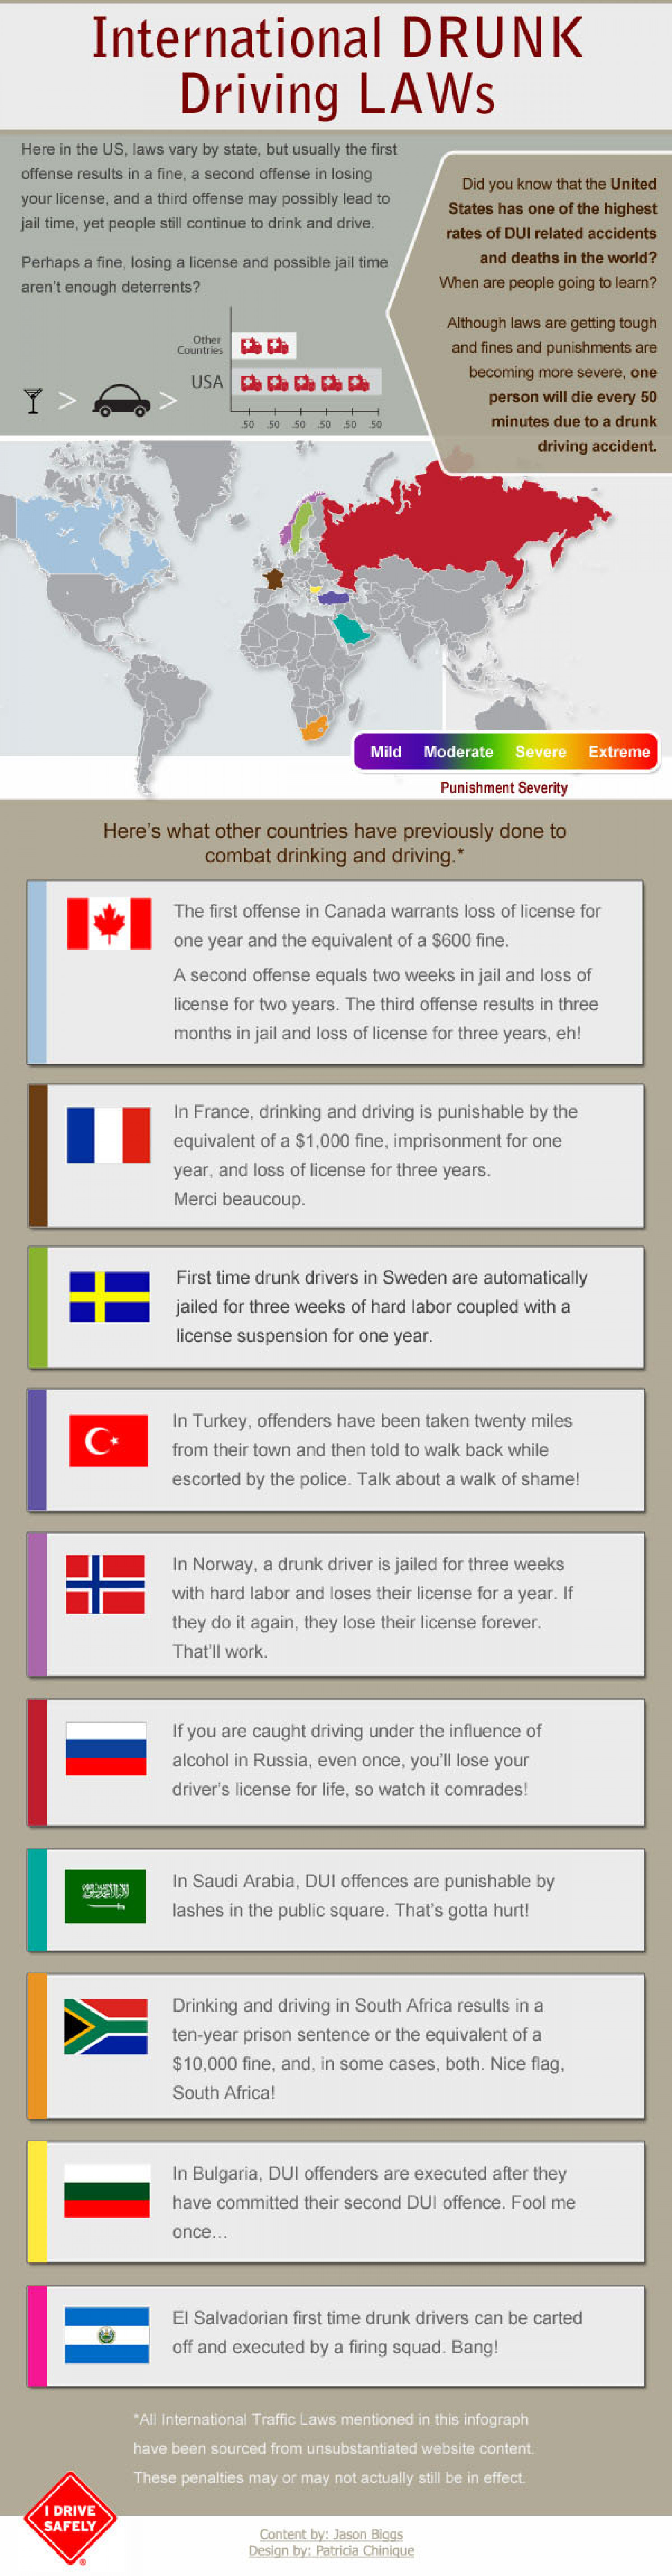 Infographic: International Drunk Driving Laws Infographic